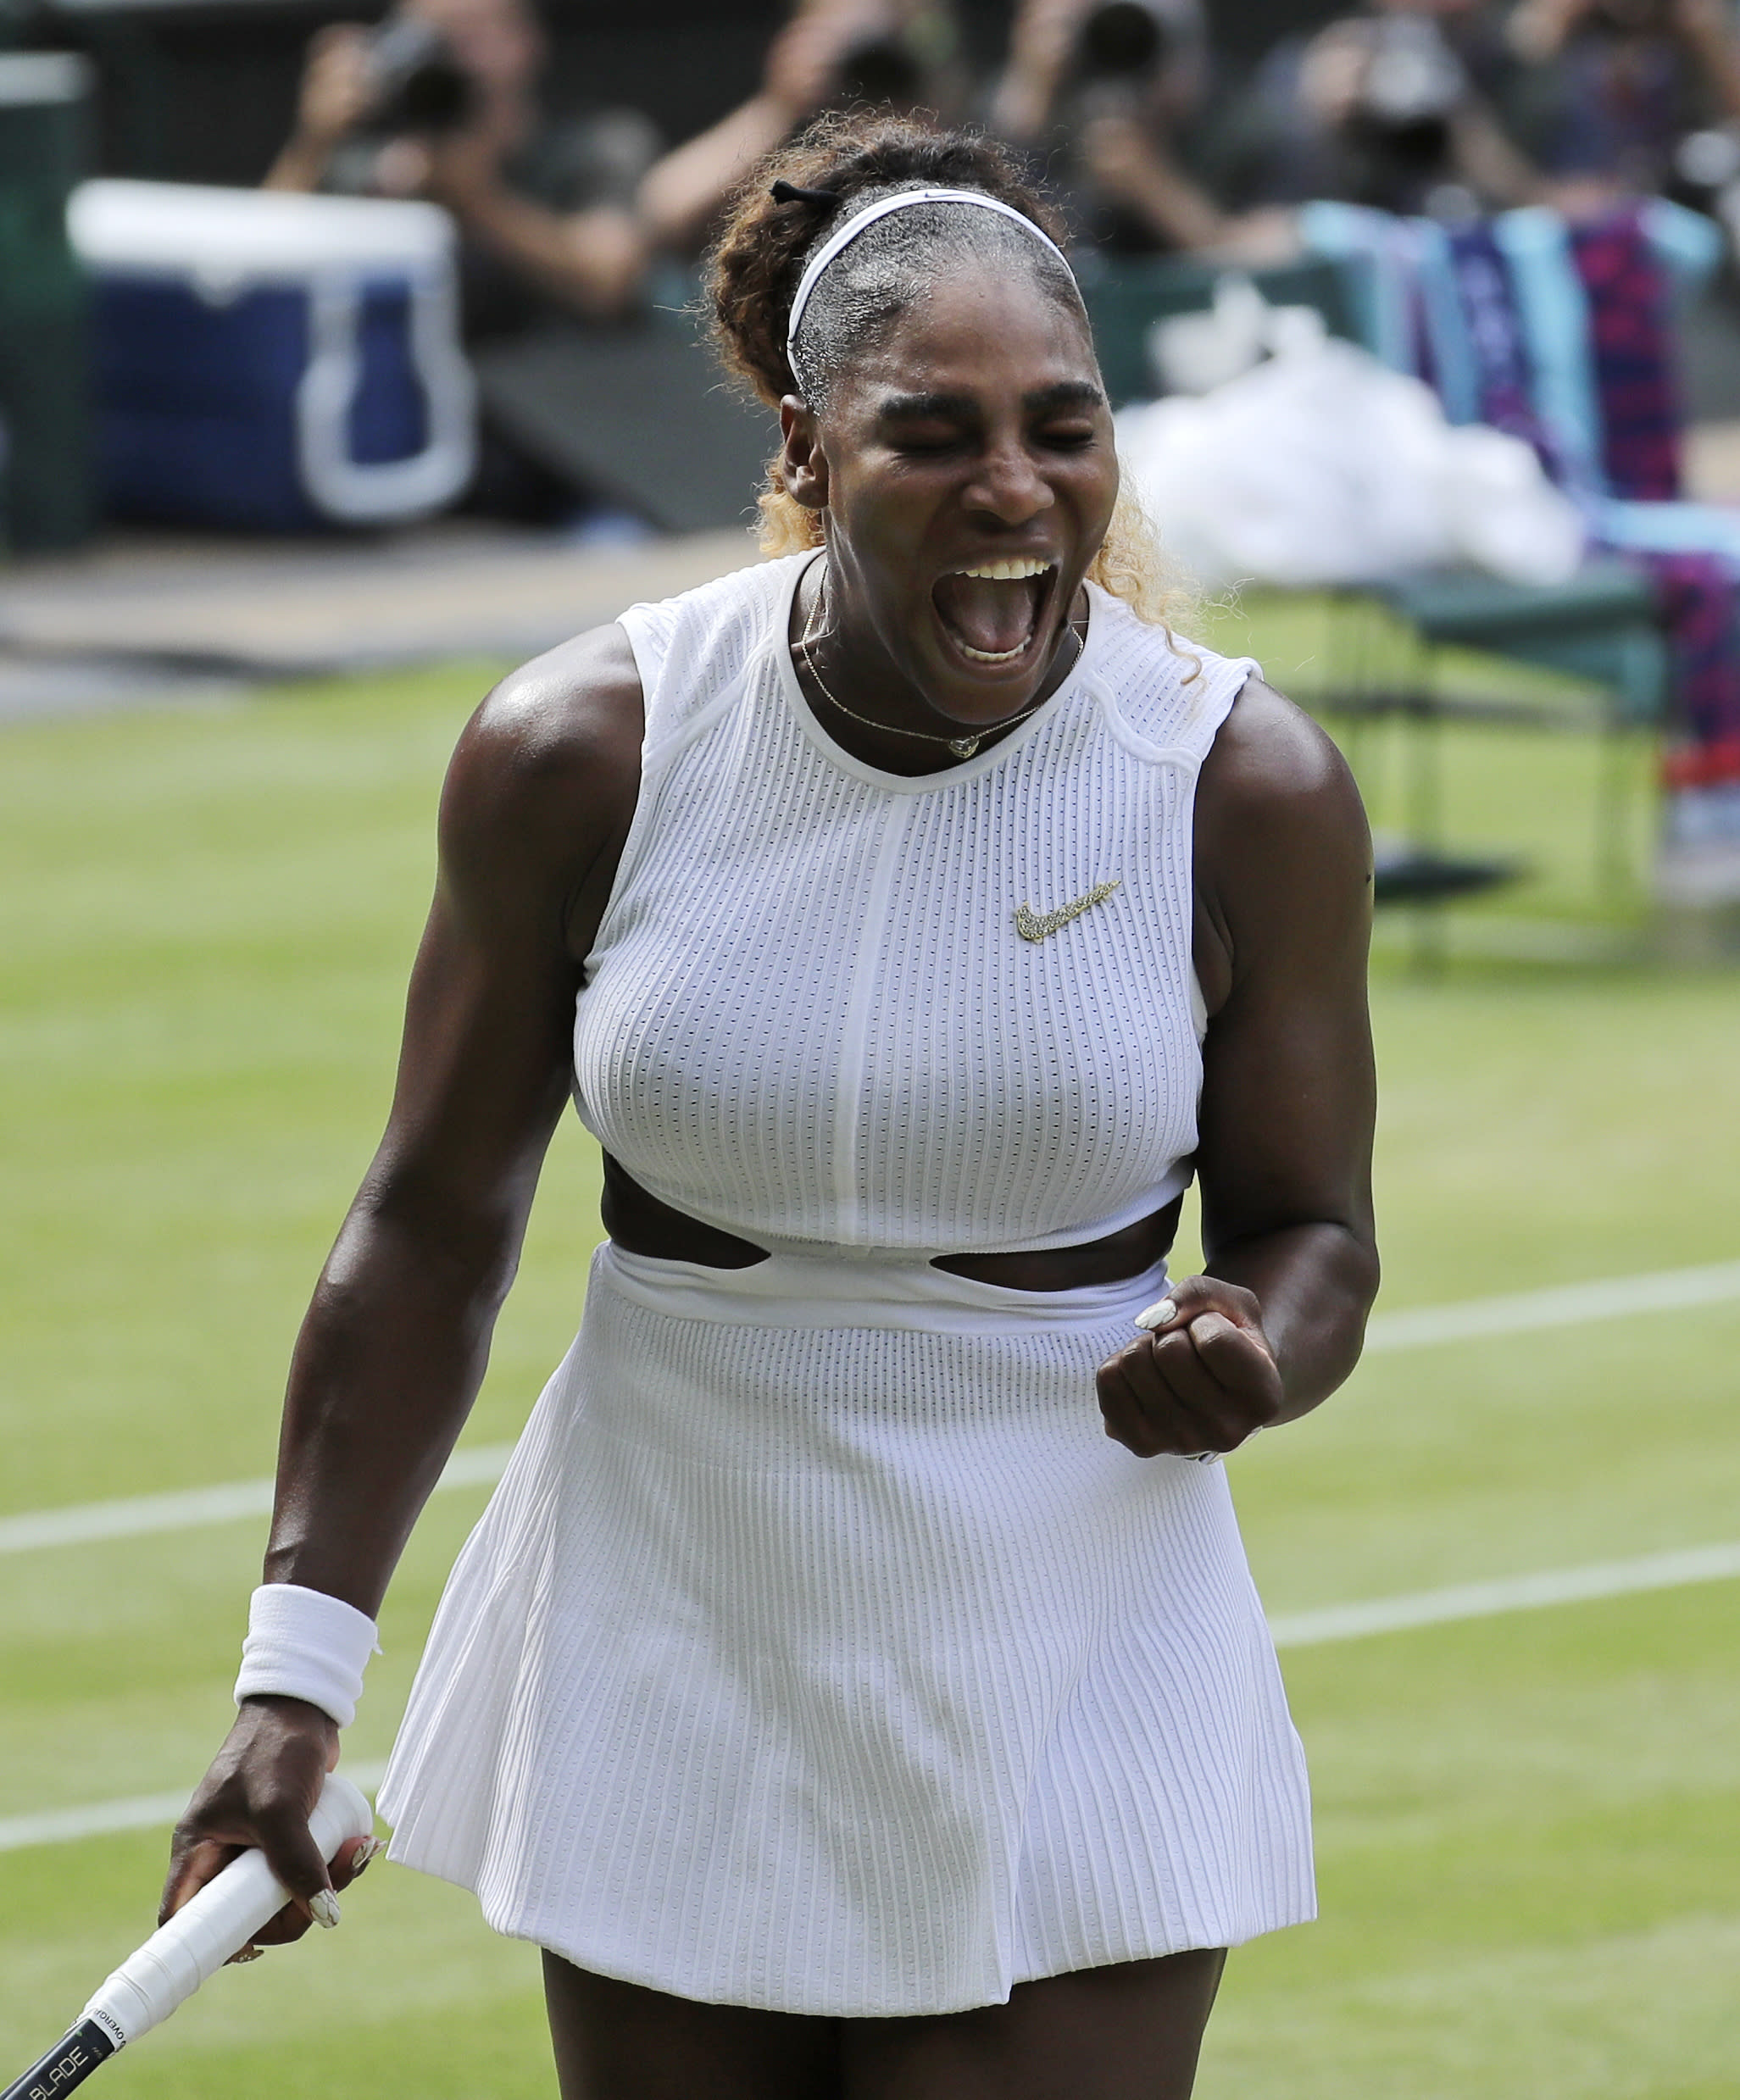 Serena Williams, still chasing history, faces Simona Halep in Wimbledon final